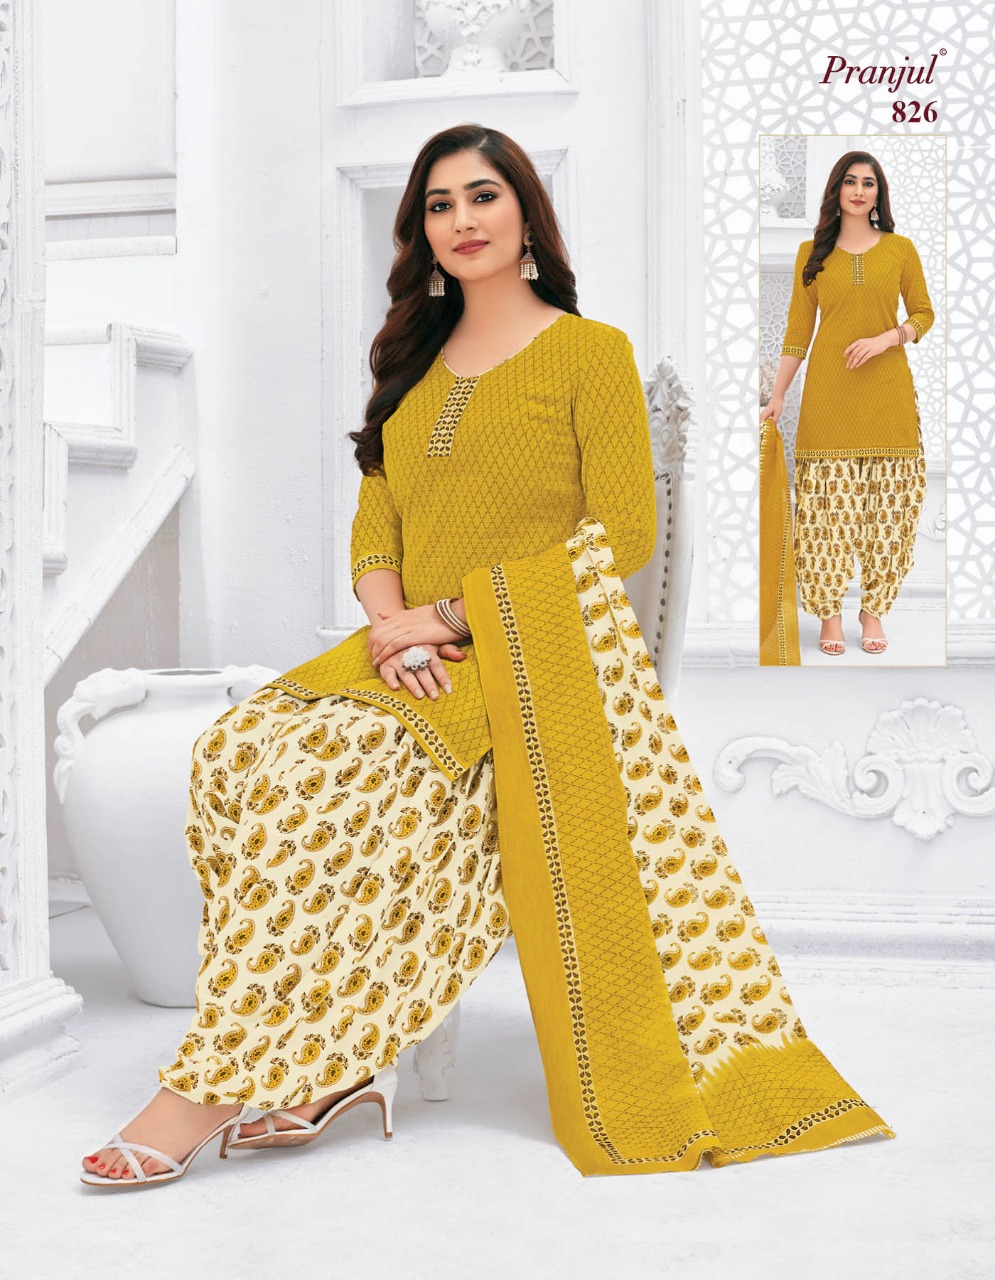 Pranjul Priyanka Vol 8 A Readymade Suit Wholesale Catalog 15 Pcs 13 - Pranjul Priyanka Vol 8 A Readymade Suit Wholesale Catalog 15 Pcs